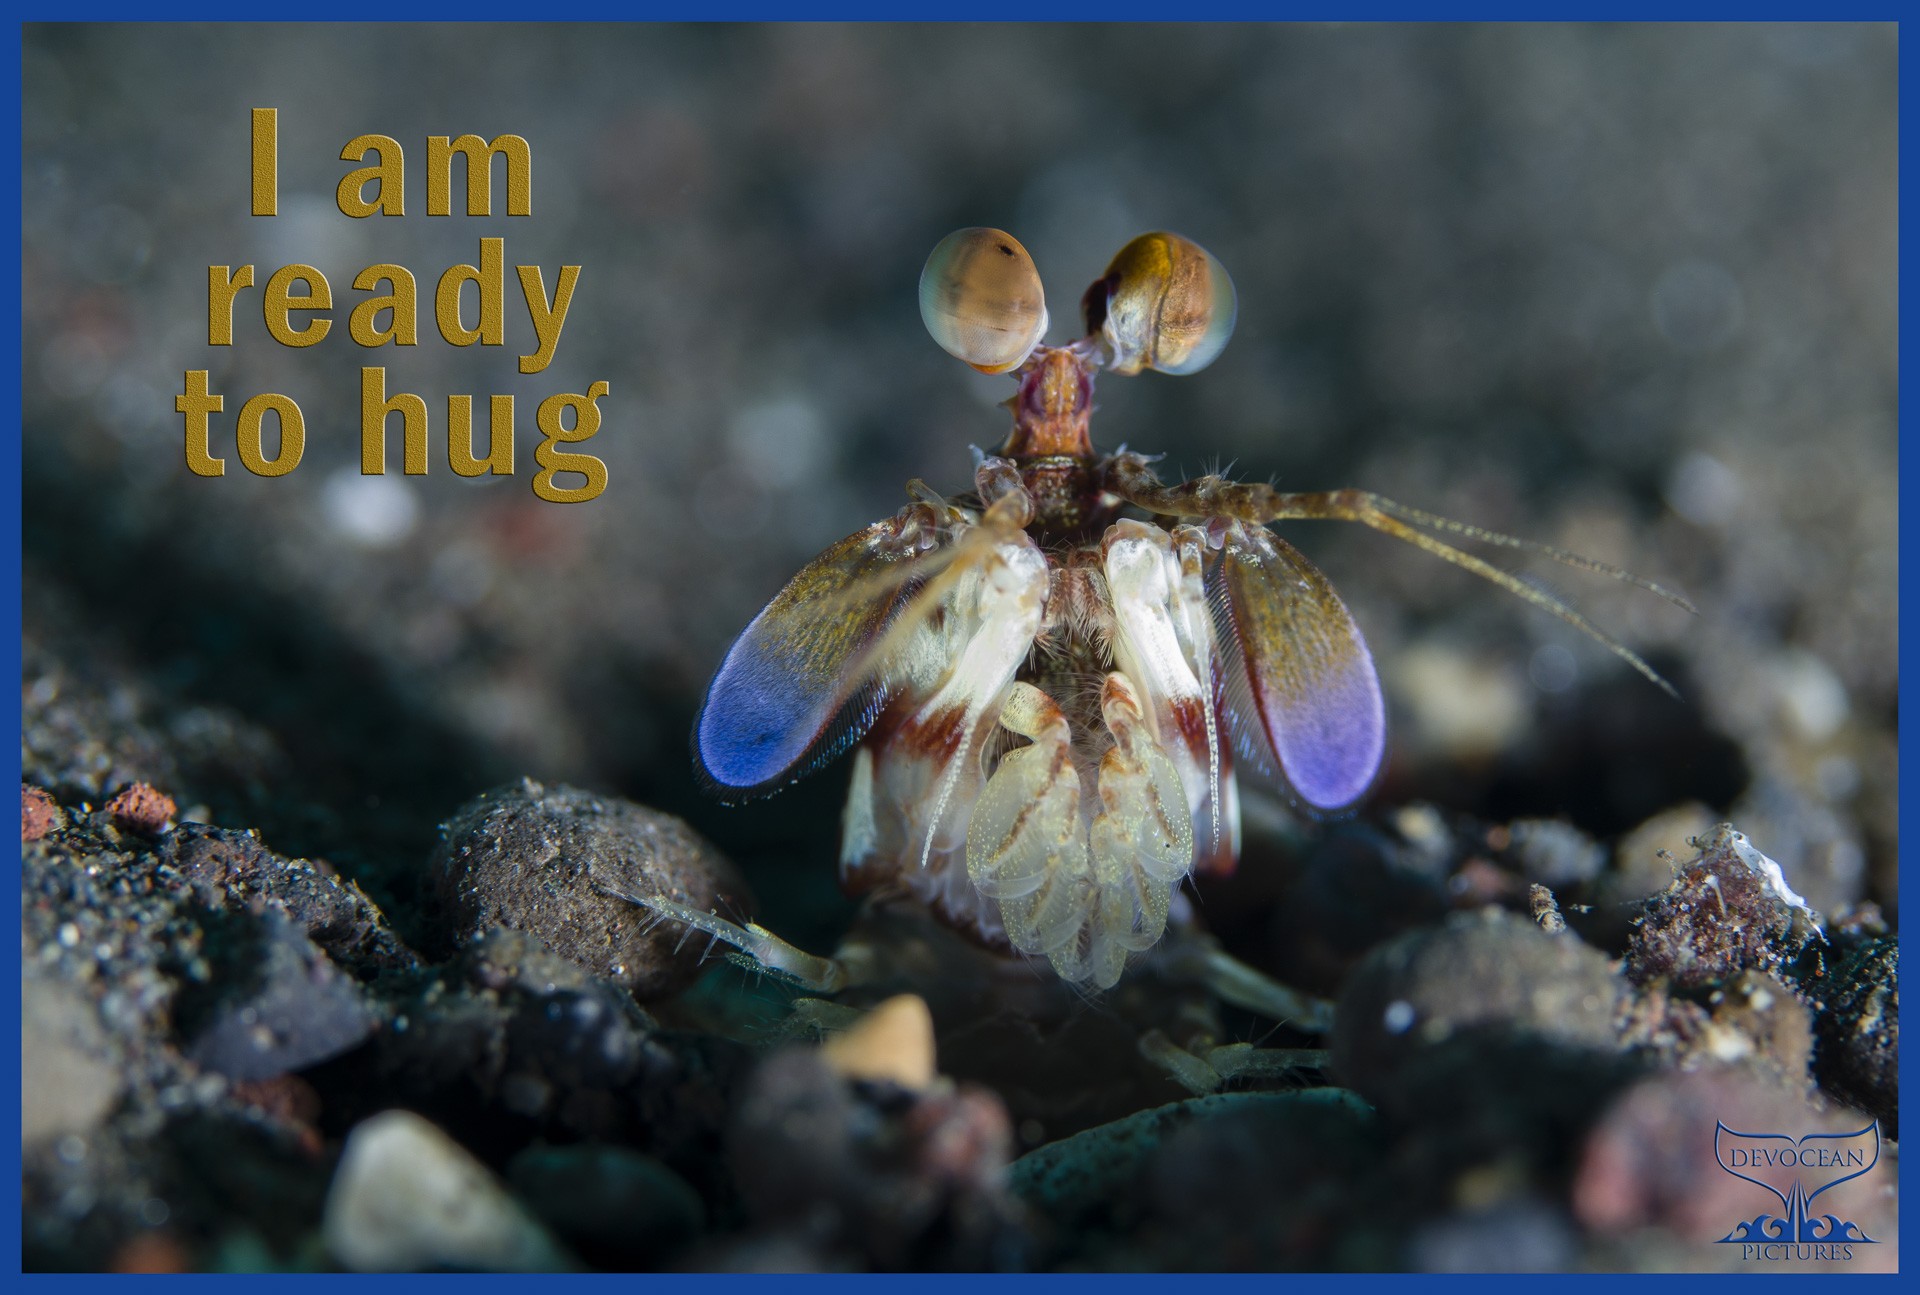 """Juvenile purple-blotched mantis shrimp (Odontodactylus latirostris) is waiting for prey to come within striking distance. Golden eyes on stalks in three layers with greenish hue, purple on paddle flaps and white body with some red lines. Prepared as postcard """"I am ready to hug"""" and logo of Devocean Pictures."""